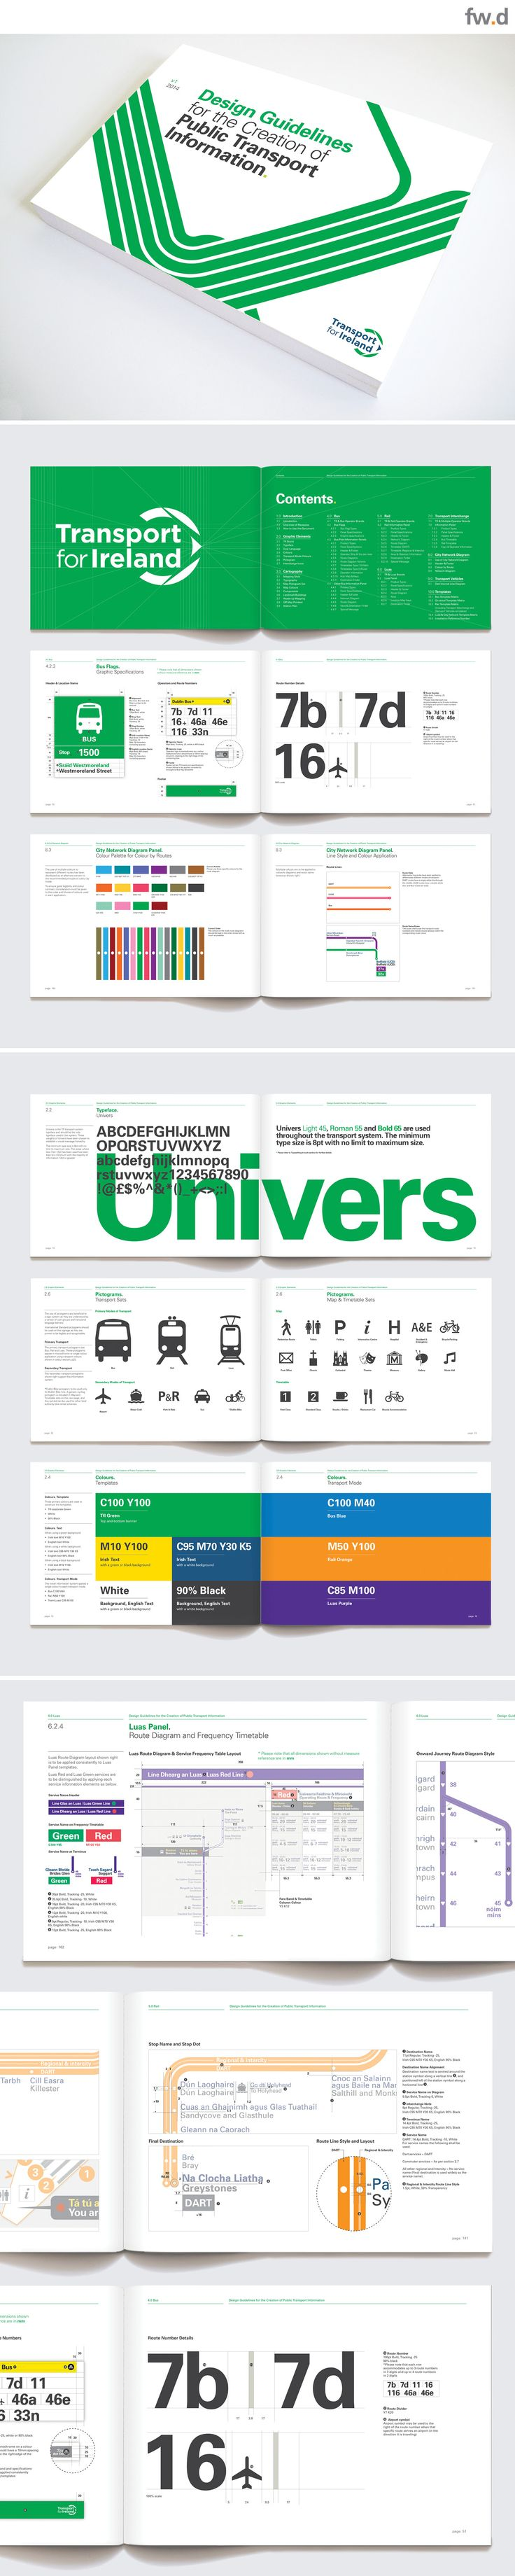 National Transport for Ireland integrated transport information graphics design guidelines by fwdesign. www.fwdesign.com  #guidelines #graphics #layout